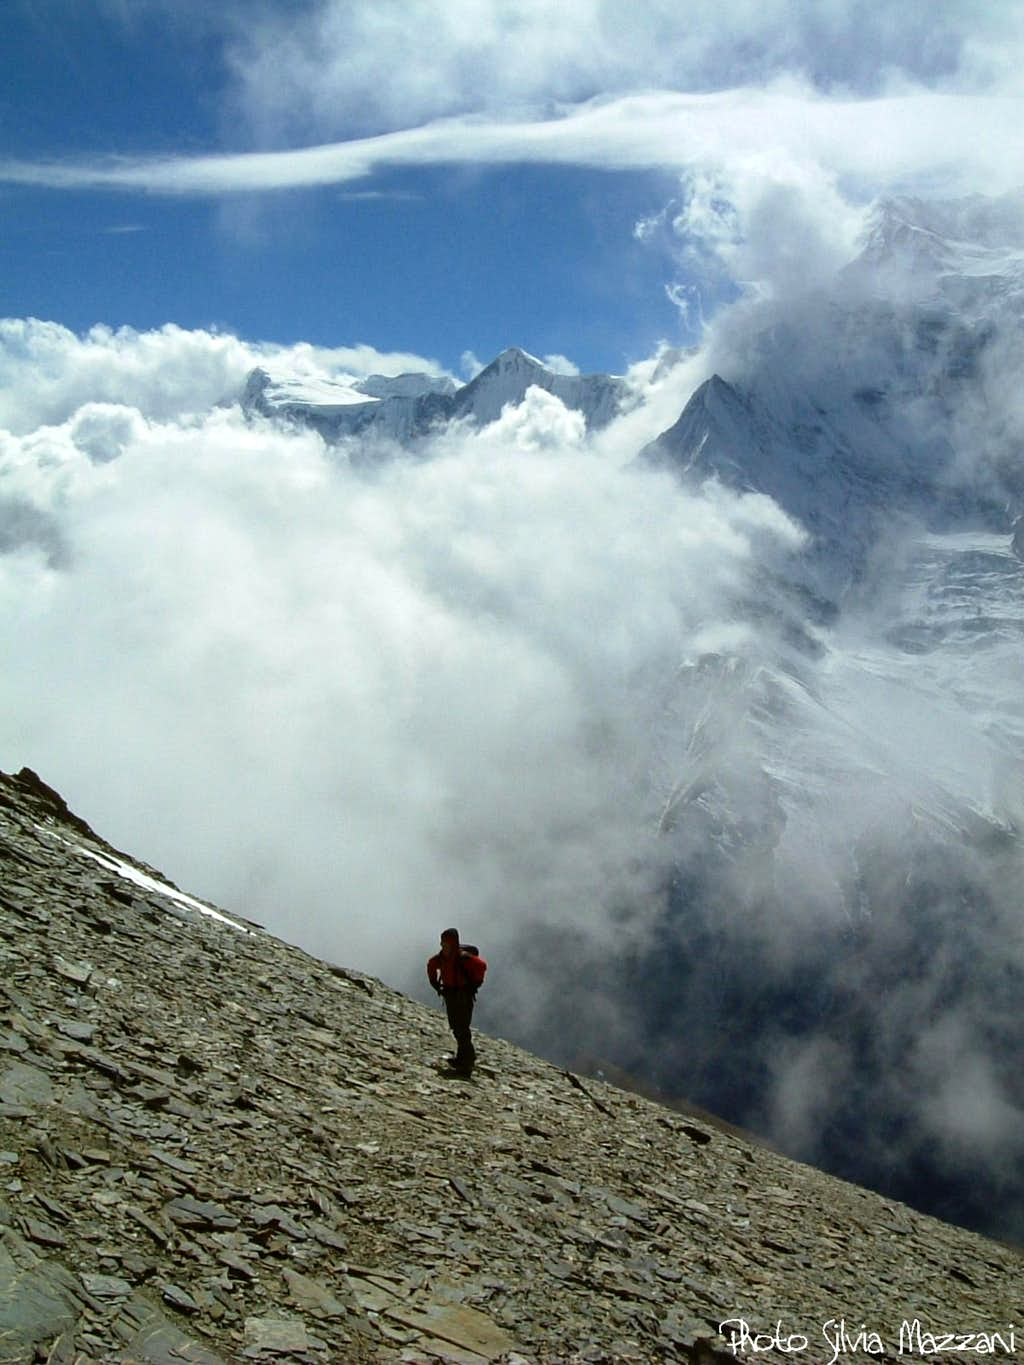 Clouds' games over Annapurna range